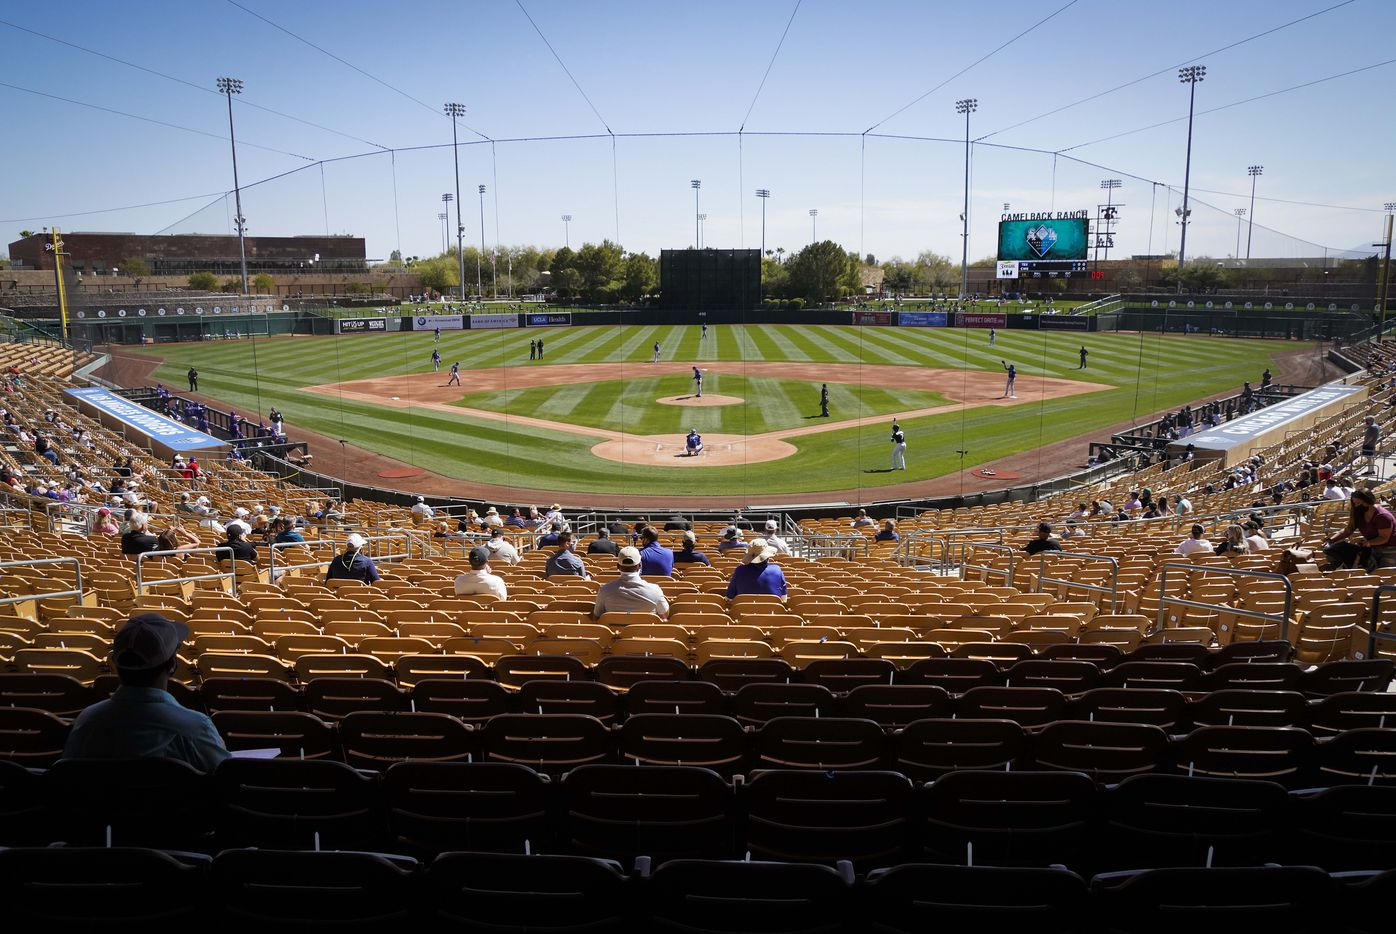 Socially distant fans watch as Chicago White Sox shortstop Tim Anderson steps into the batters box to face Texas Rangers pitcher Kohei Arihara during the first inning of a spring training game at Camelback Ranch on Tuesday, March 2, 2021, in Phoenix, Ariz.